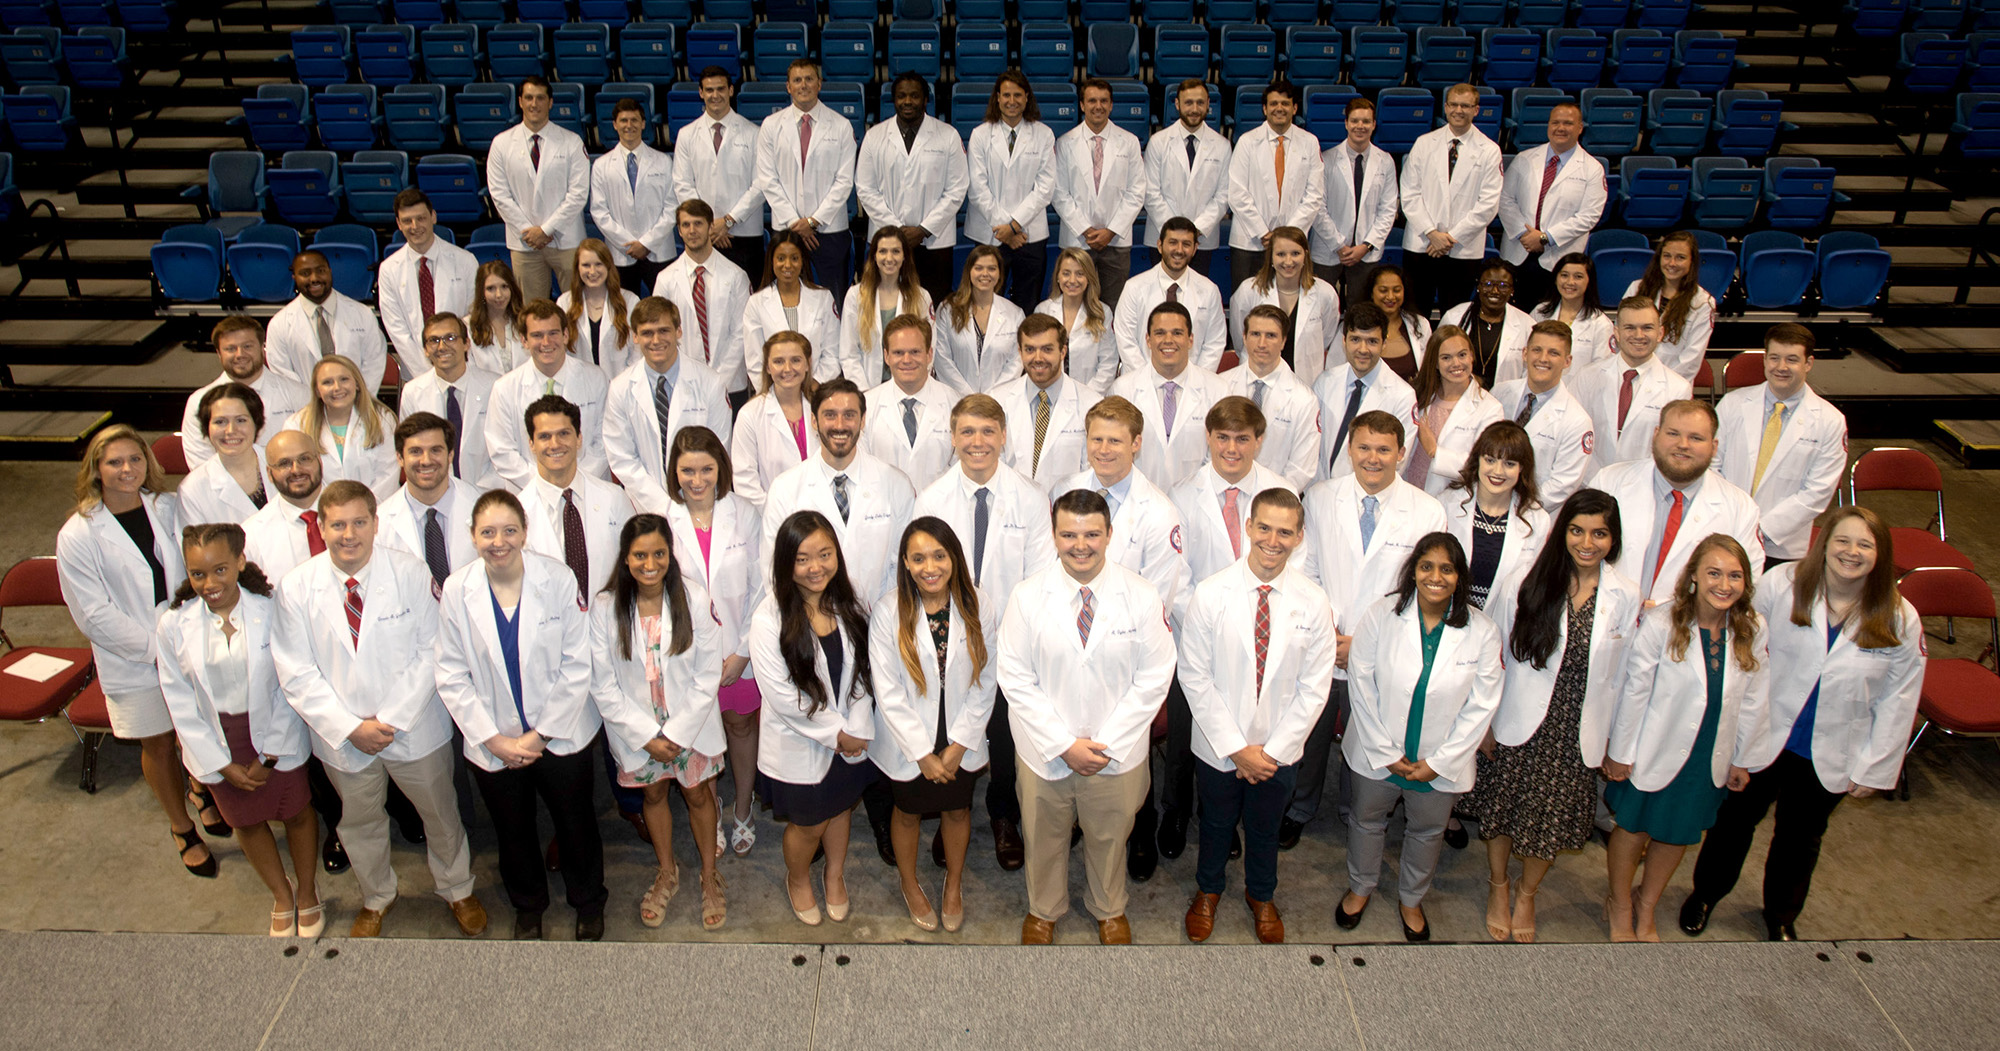 The medical students of the Class of 2020